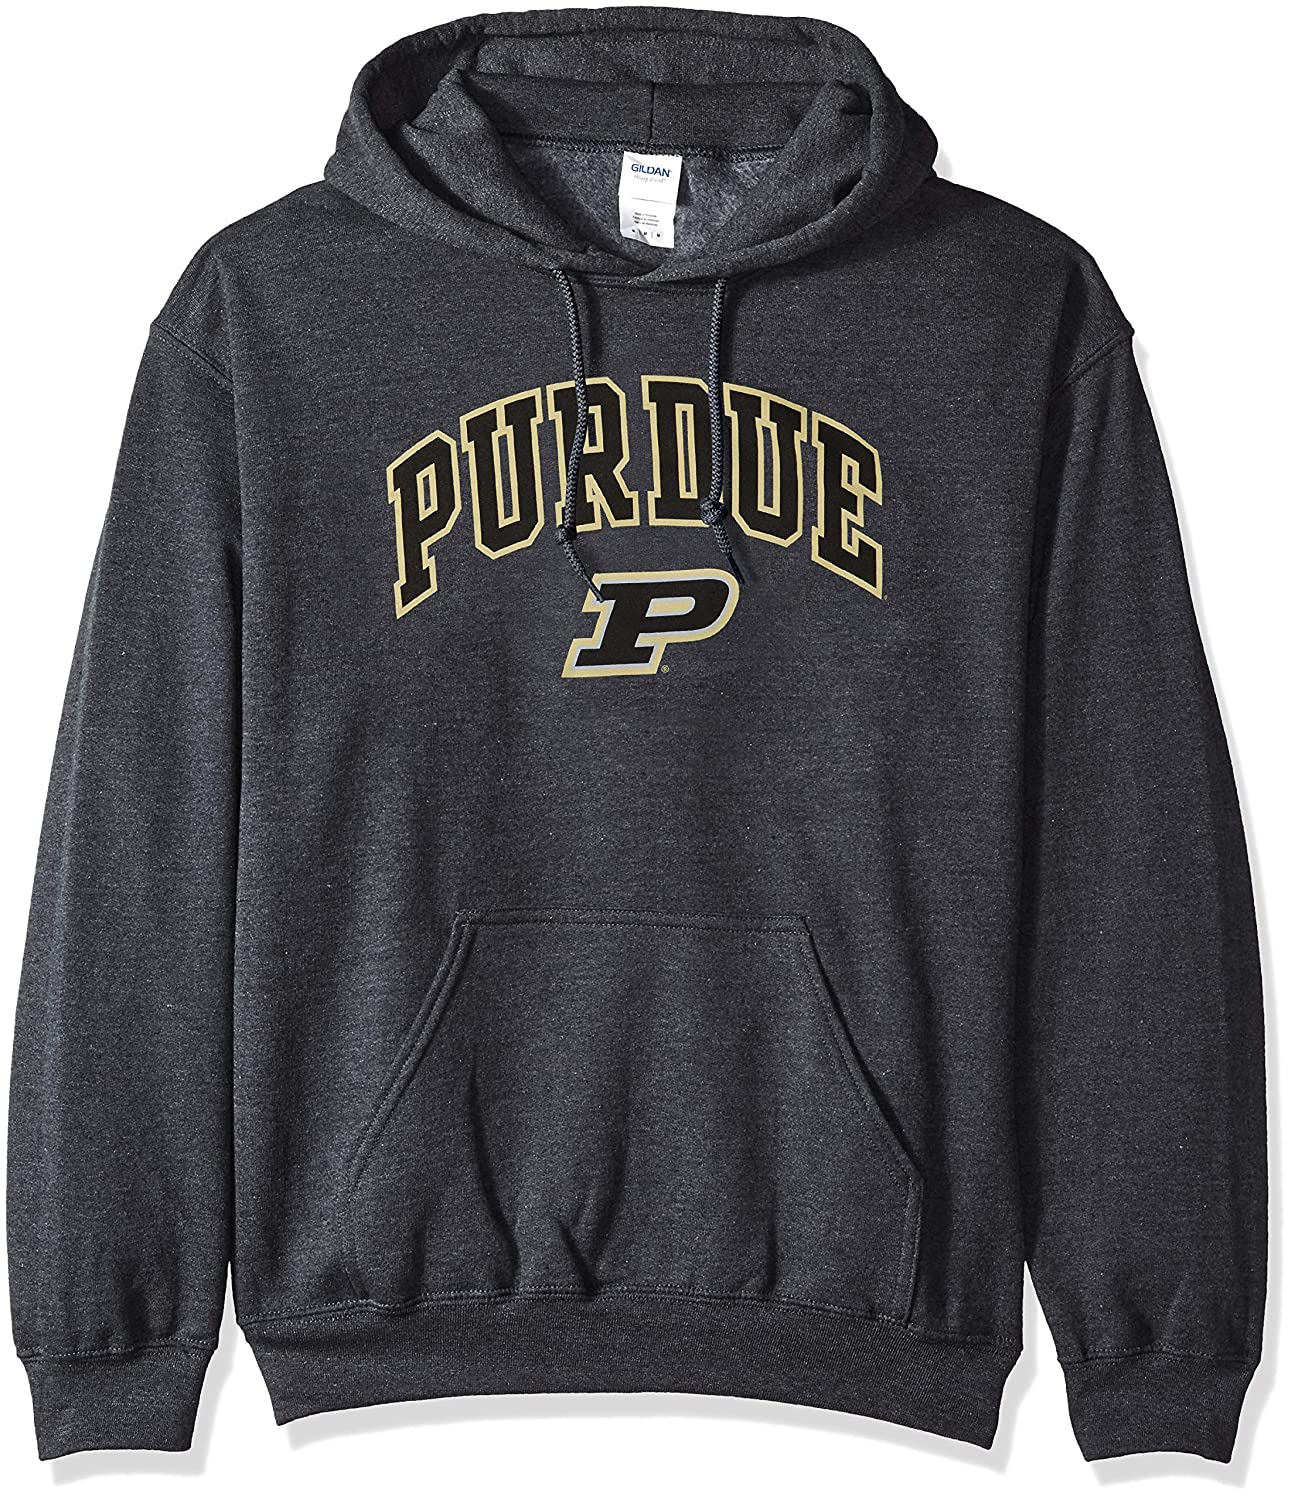 Dark Heather Small NCAA Purdue Boilermakers Mens Hoodie Sweatshirt Dark Charcoal Gray